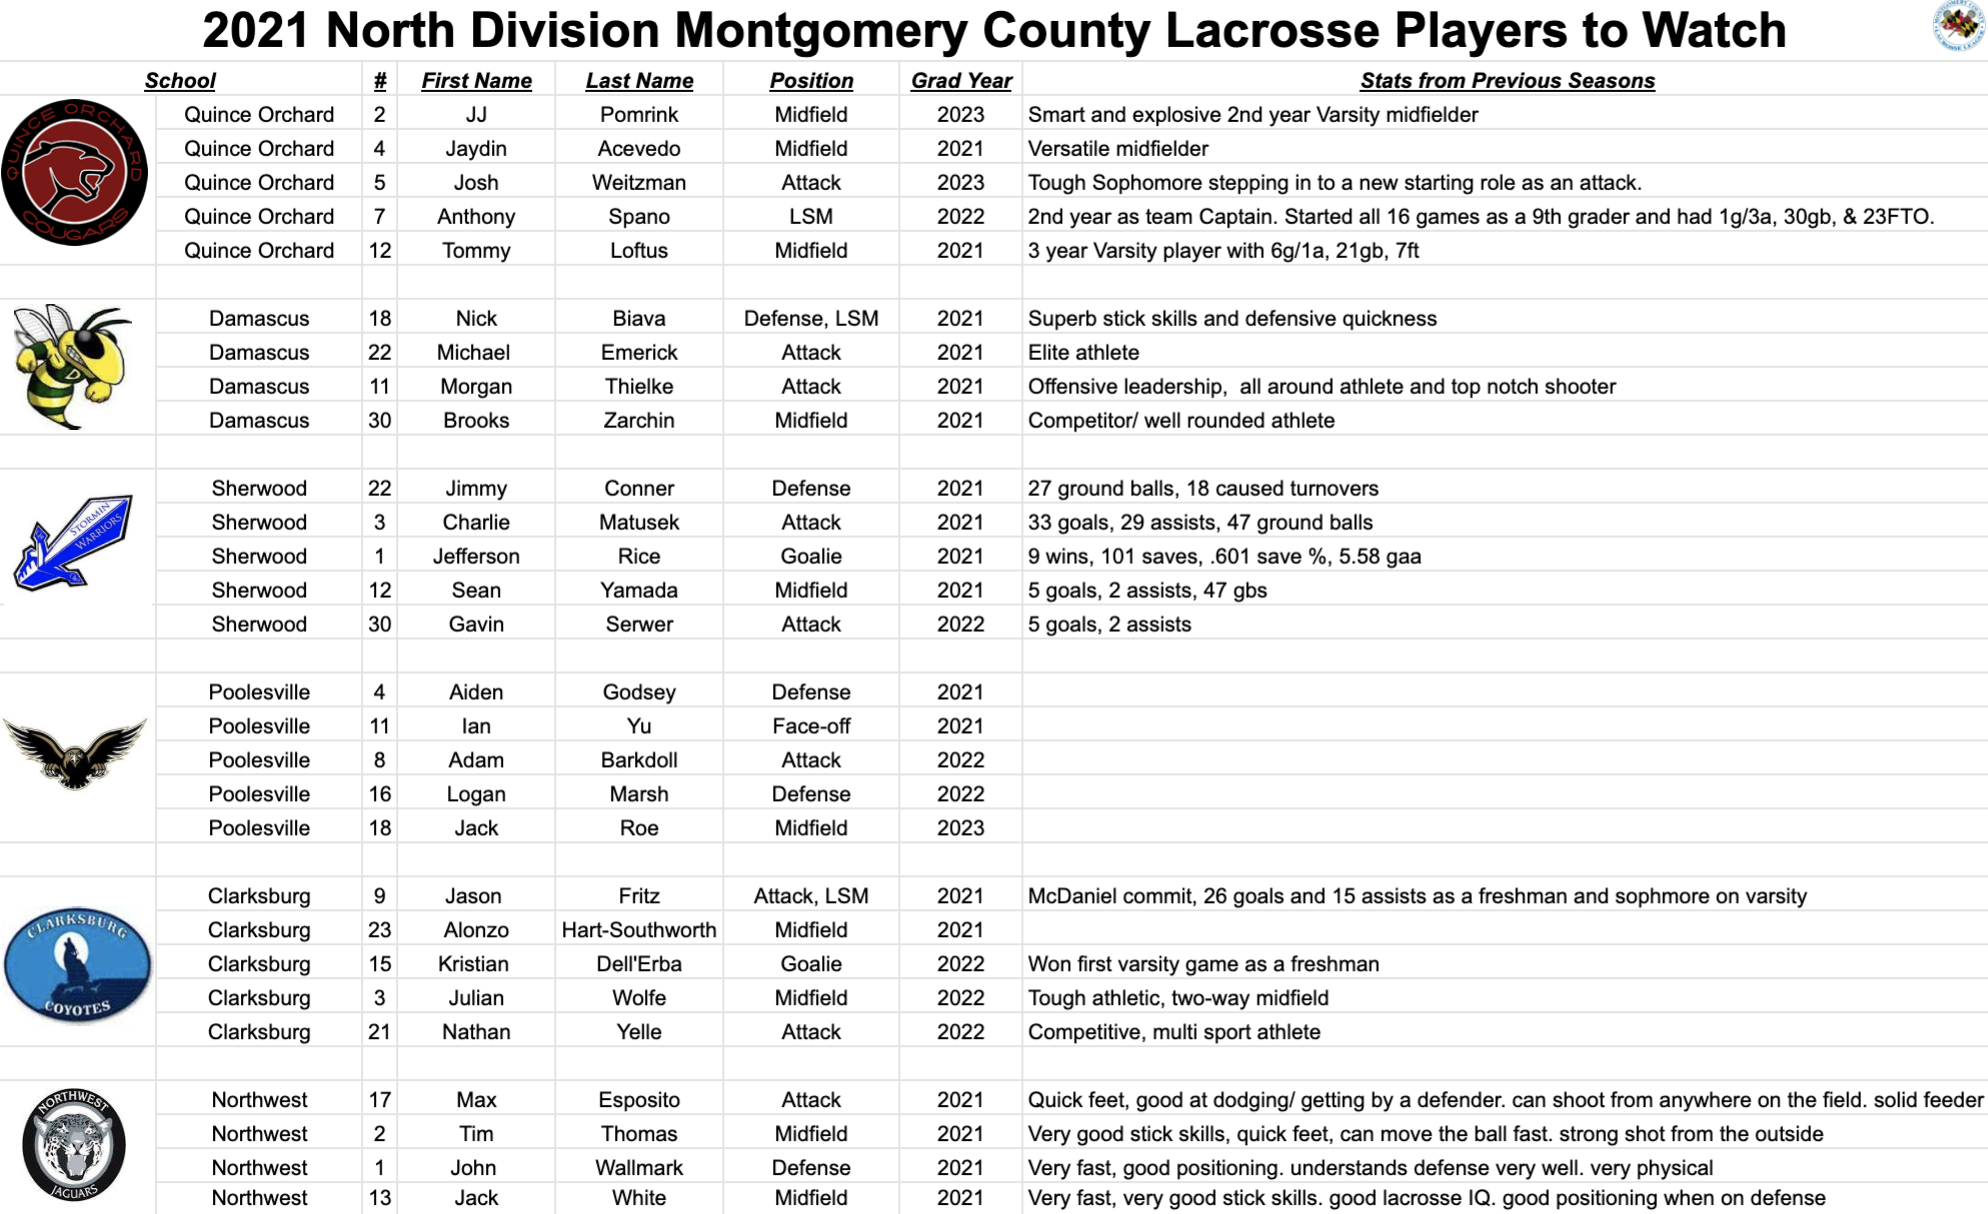 2021 North Division Montgomery County Lacrosse Players to Watch